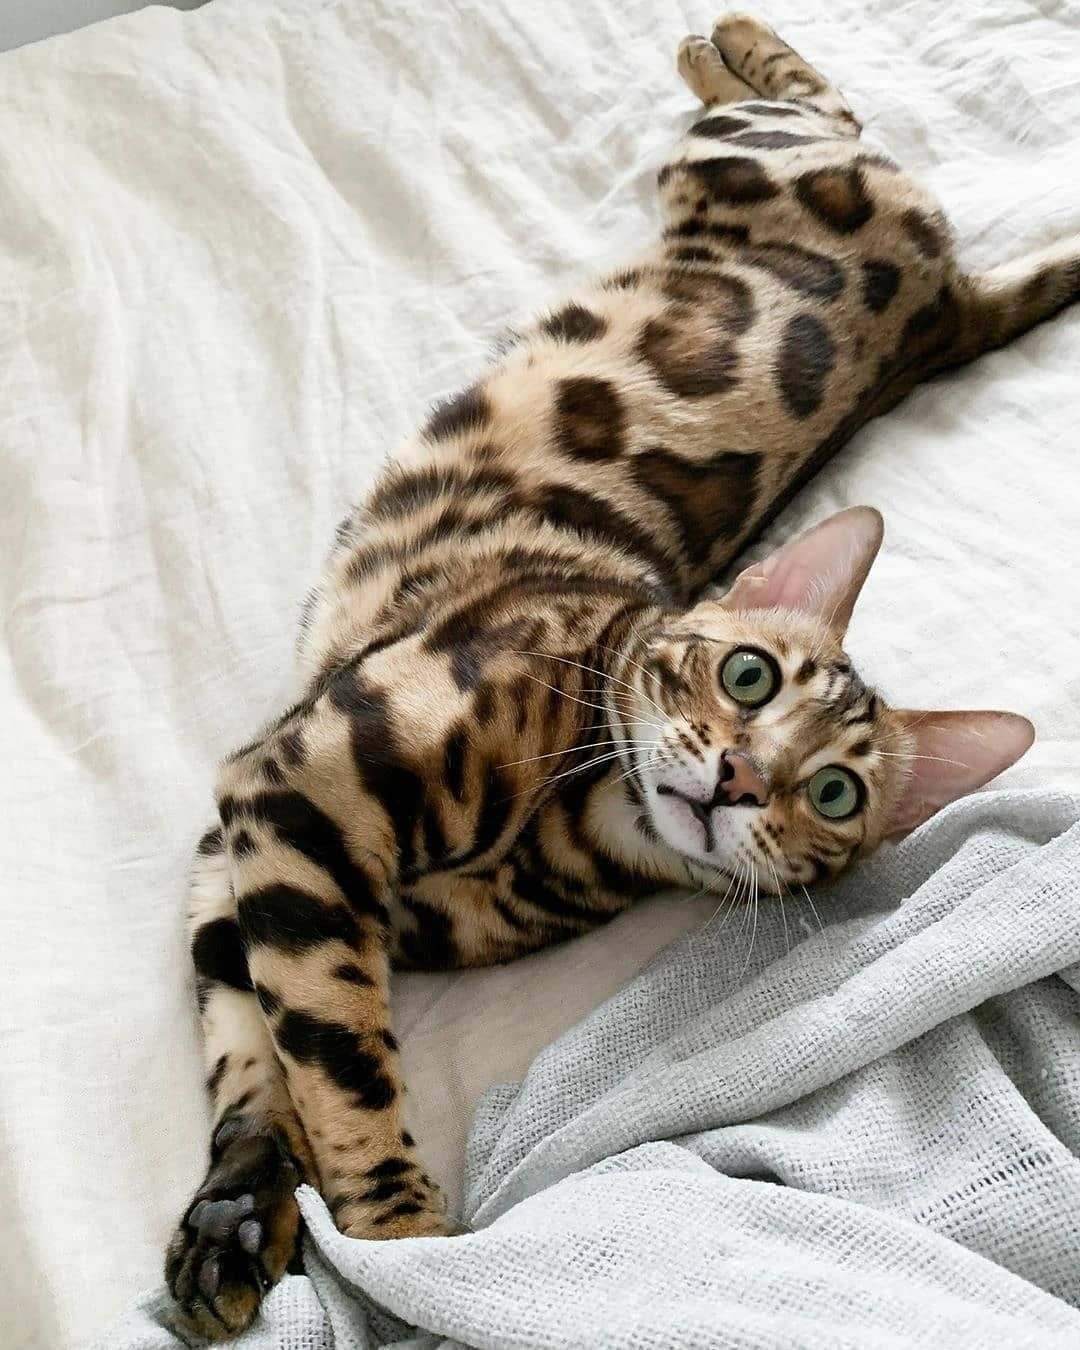 Bengal Lovers Bengals Lovers Posted On Instagram Love The Patterns Follow Bengals Lovers Follow Bengals Lovers Follo Di 2020 Kucing Bengal Kucing